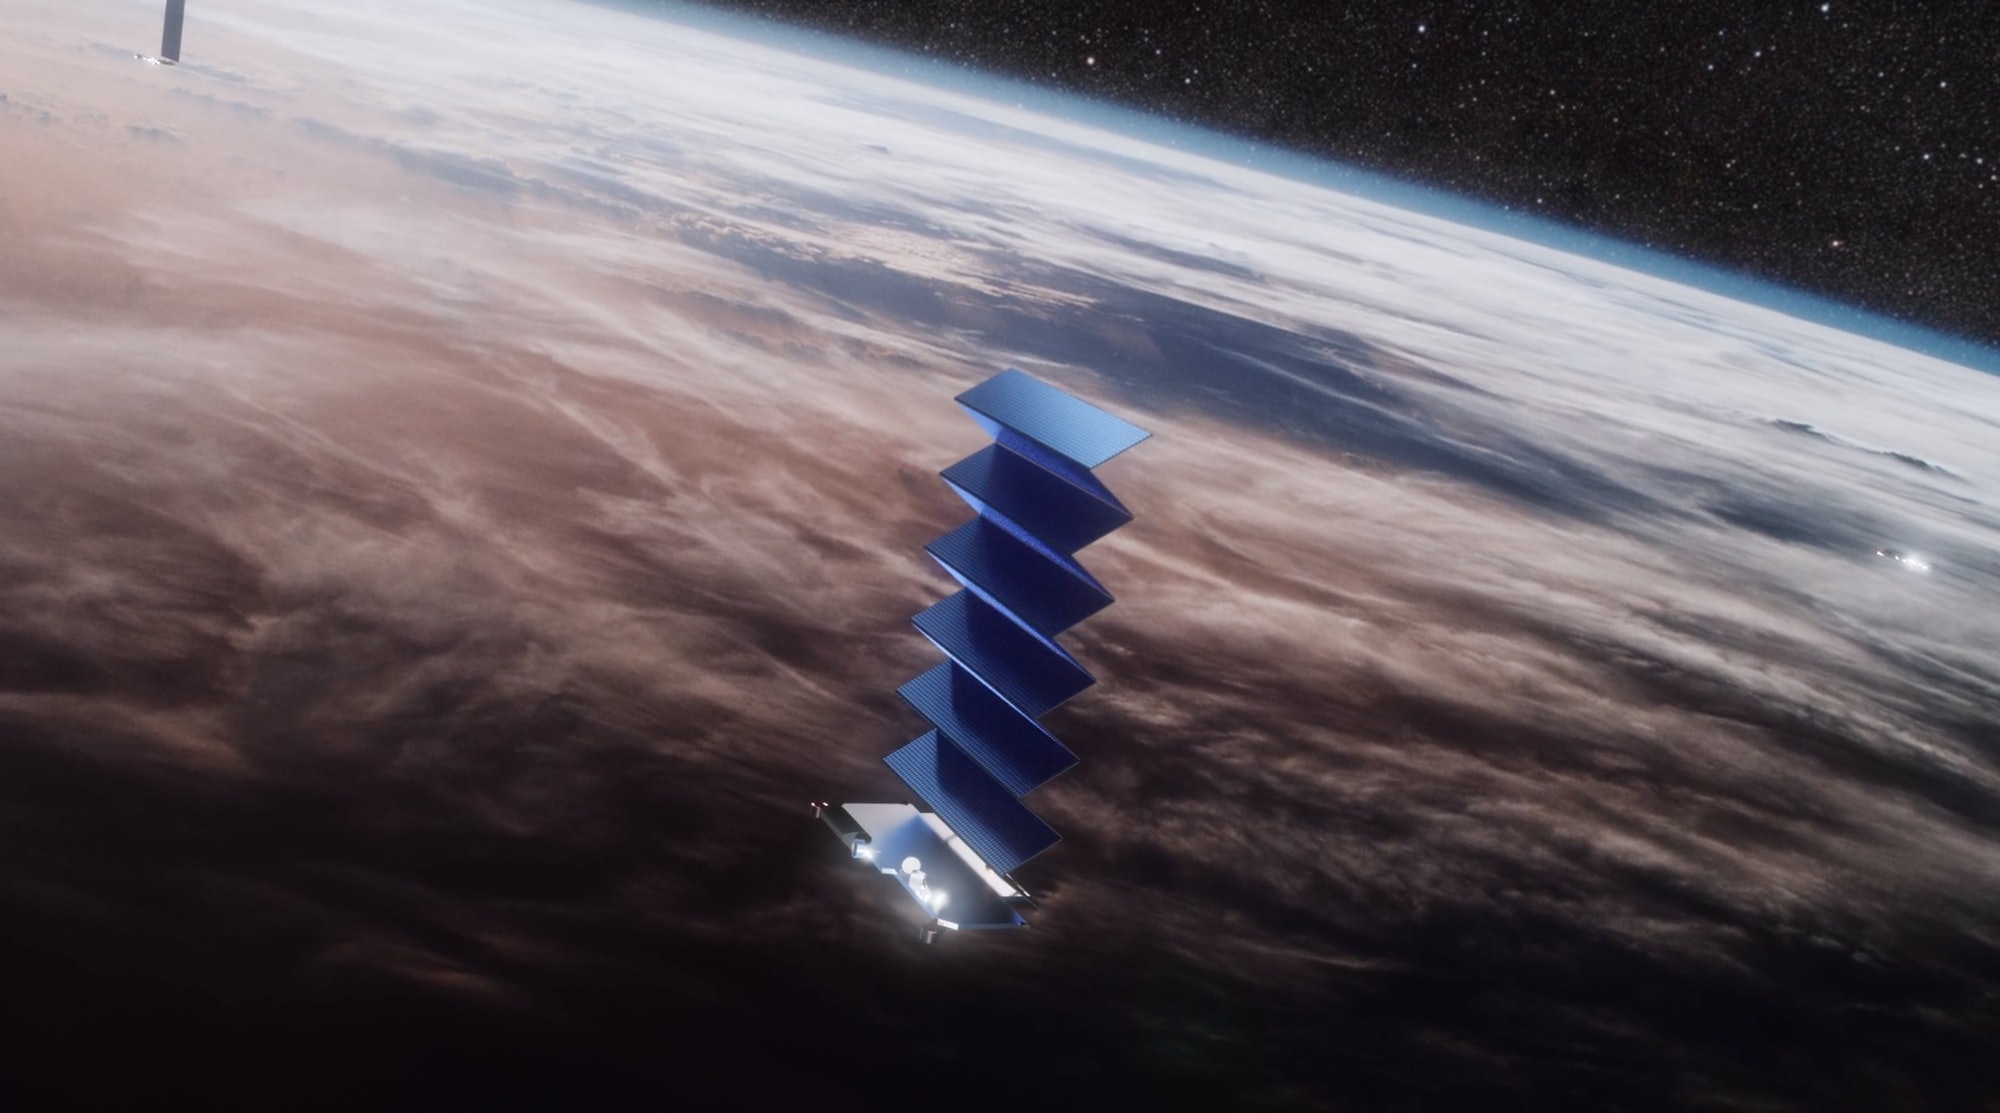 A SpaceX Starlink satellite unfolding.